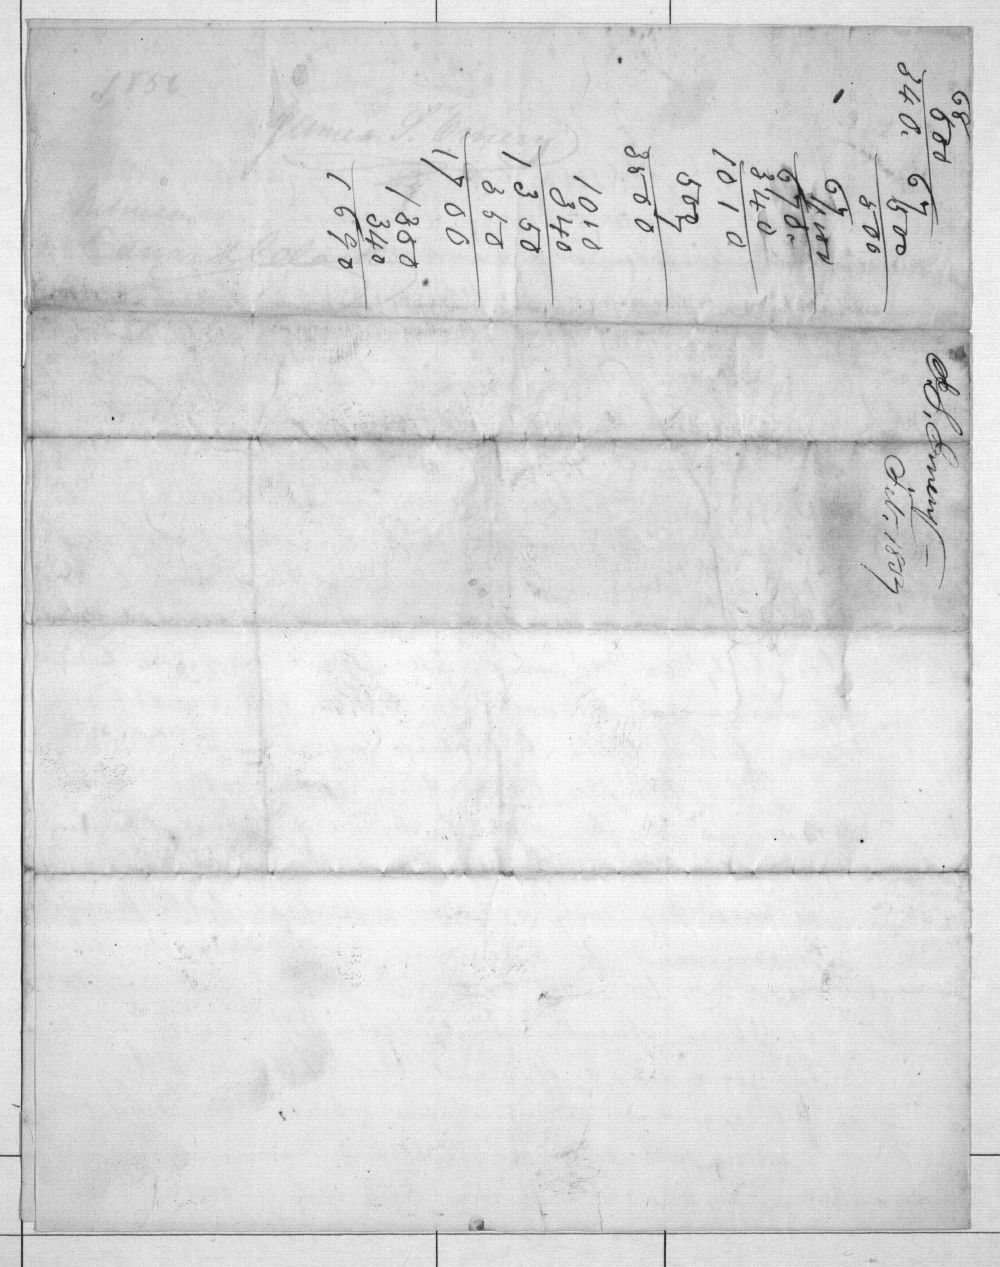 Deed to Nathaniel S. Higgins - 3